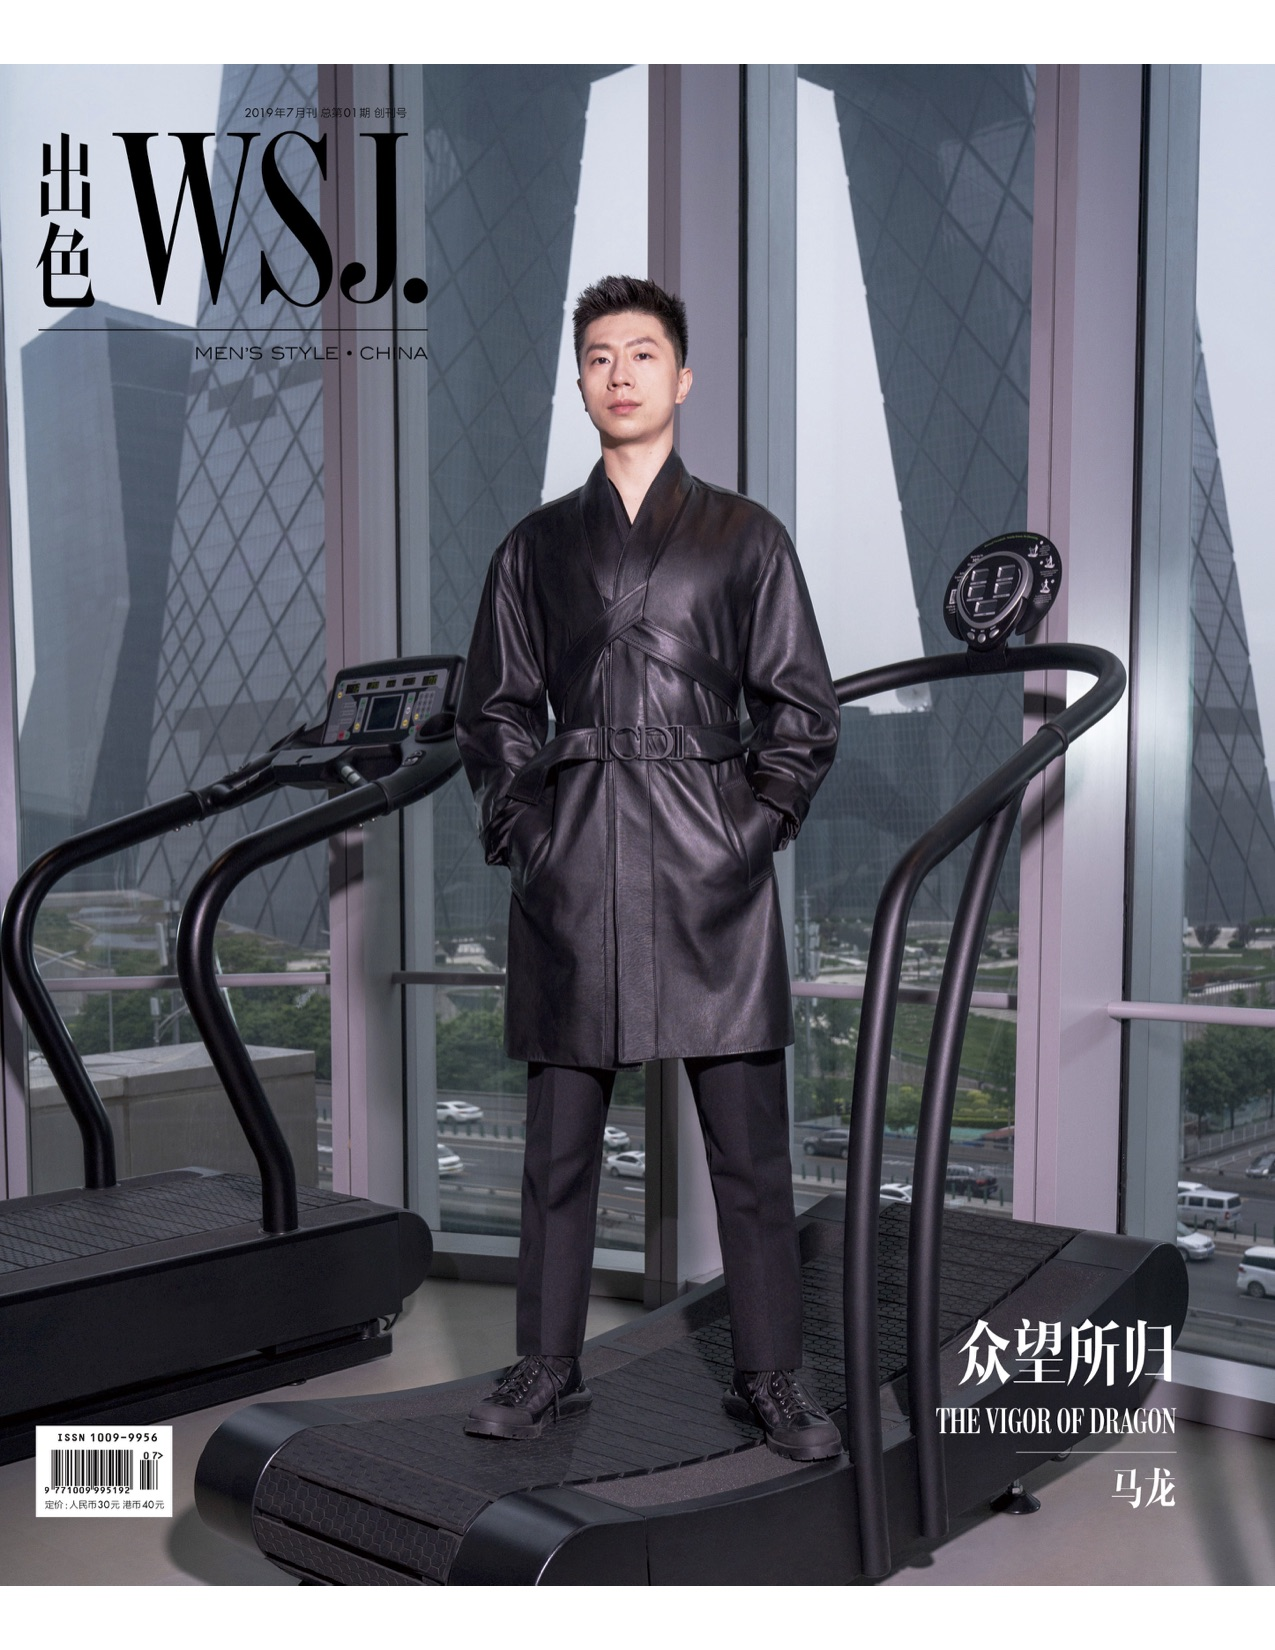 The first issue of WSJ. China magazine featuring table tennis star Ma Long.